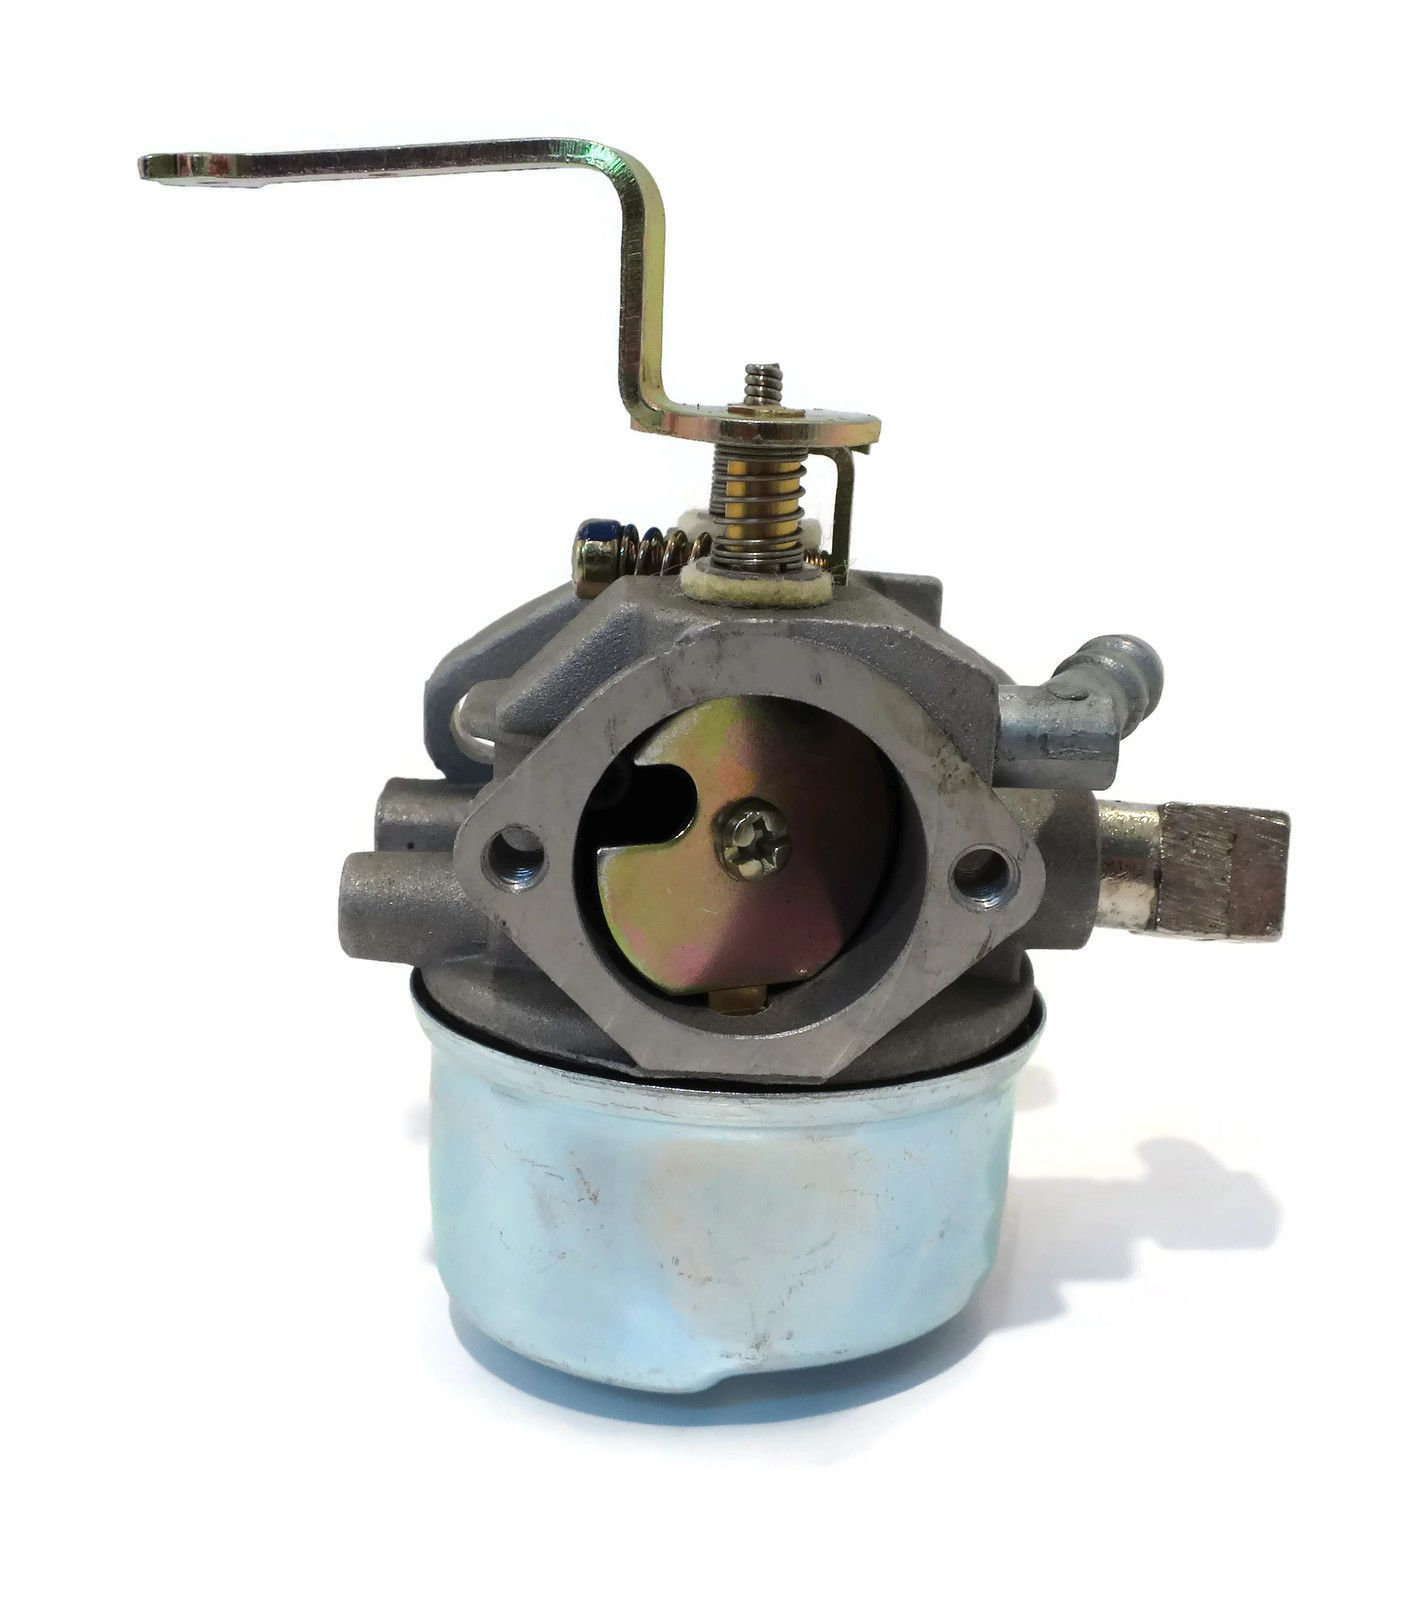 The ROP Shop Carburetor Carb for Tecumseh 640112 Stens 520-954, 056-318 HM80 HM90 HM100 Motor by The ROP Shop (Image #2)